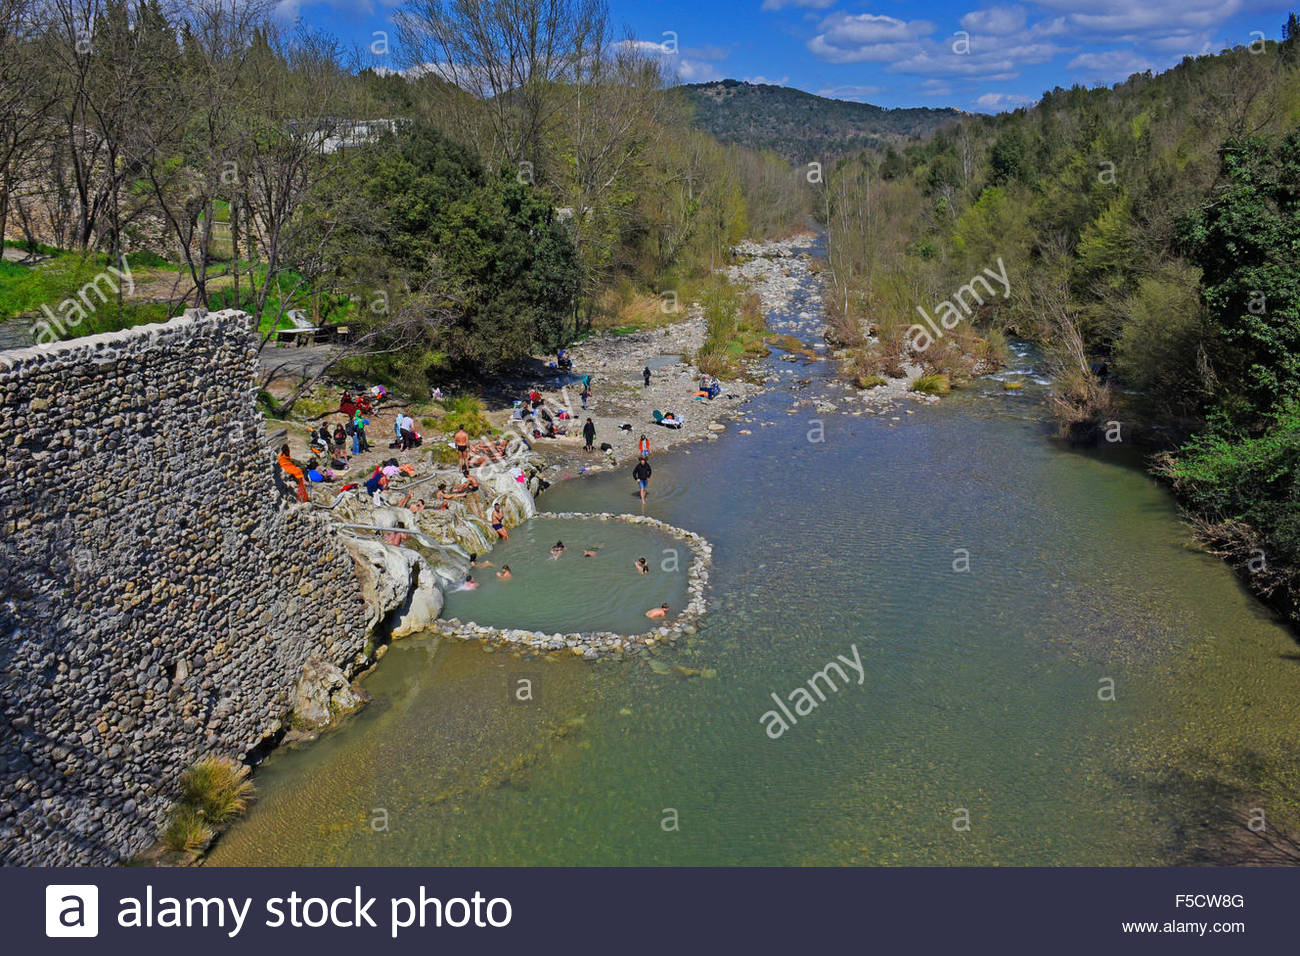 07042015 monticiano tuscany italy bagni di petriolo is a district of monticiano in the province of siena the place is mostly known for its spas